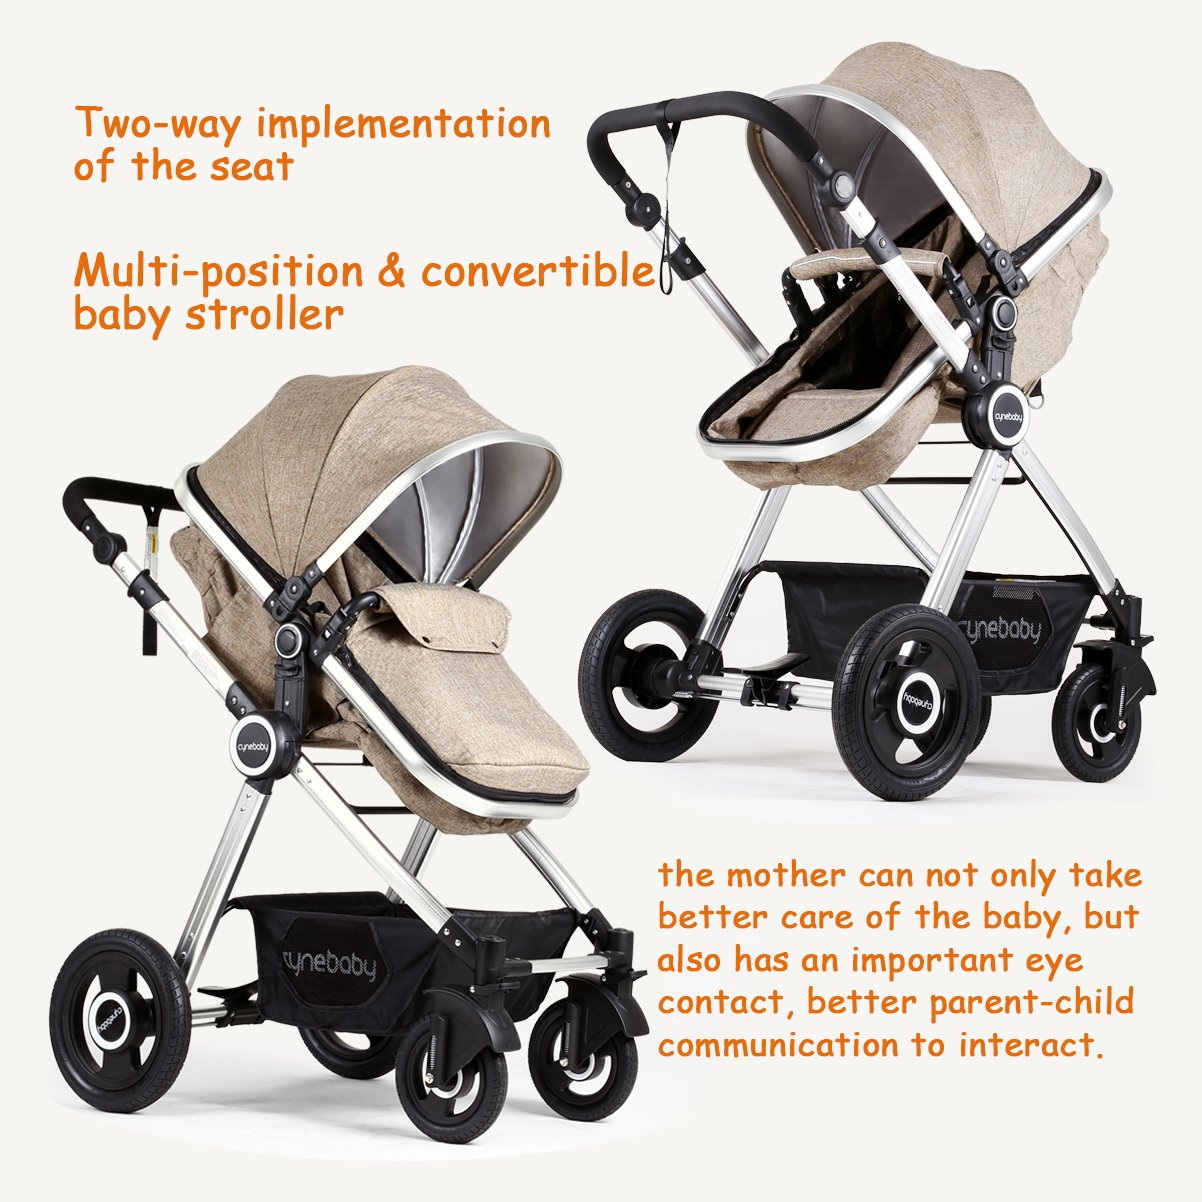 Infant Toddler Stroller Folding Convertible Carriage Infant Anti-Shock High View Luxury Baby Stroller Newborn Pram Stroller Pushchair Stroller for Babies(Light Camel) by Cynebaby (Image #2)